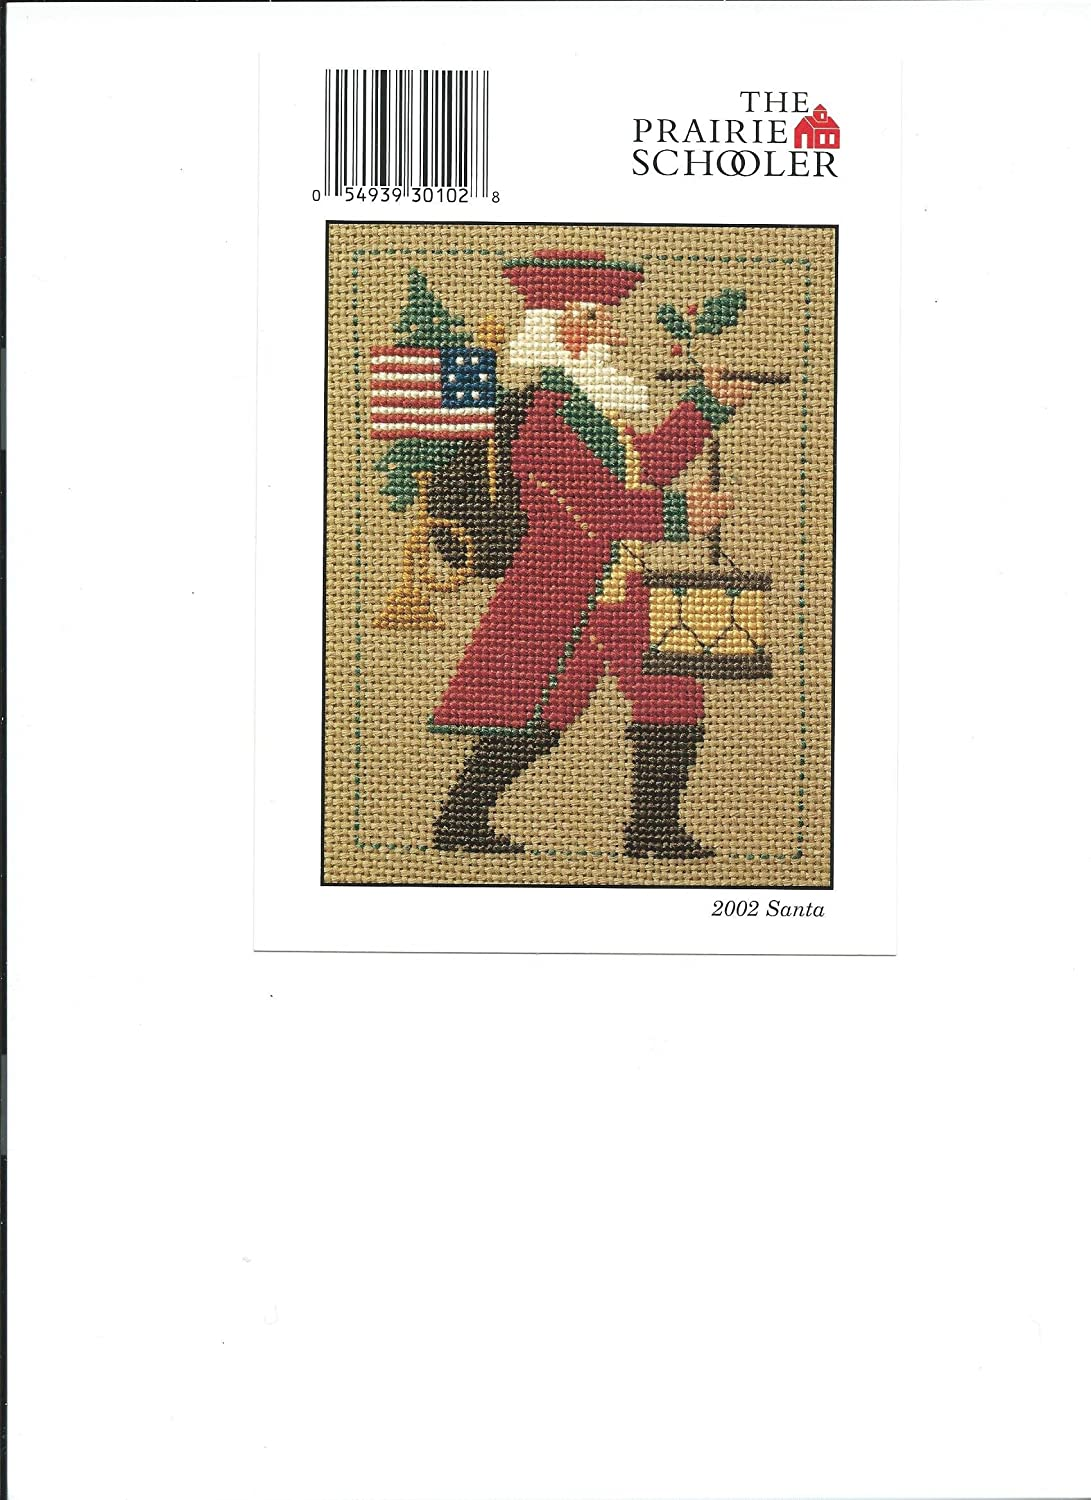 The Prairie Schooler--2002 SANTA--Counted Cross Stitch Pattern Card